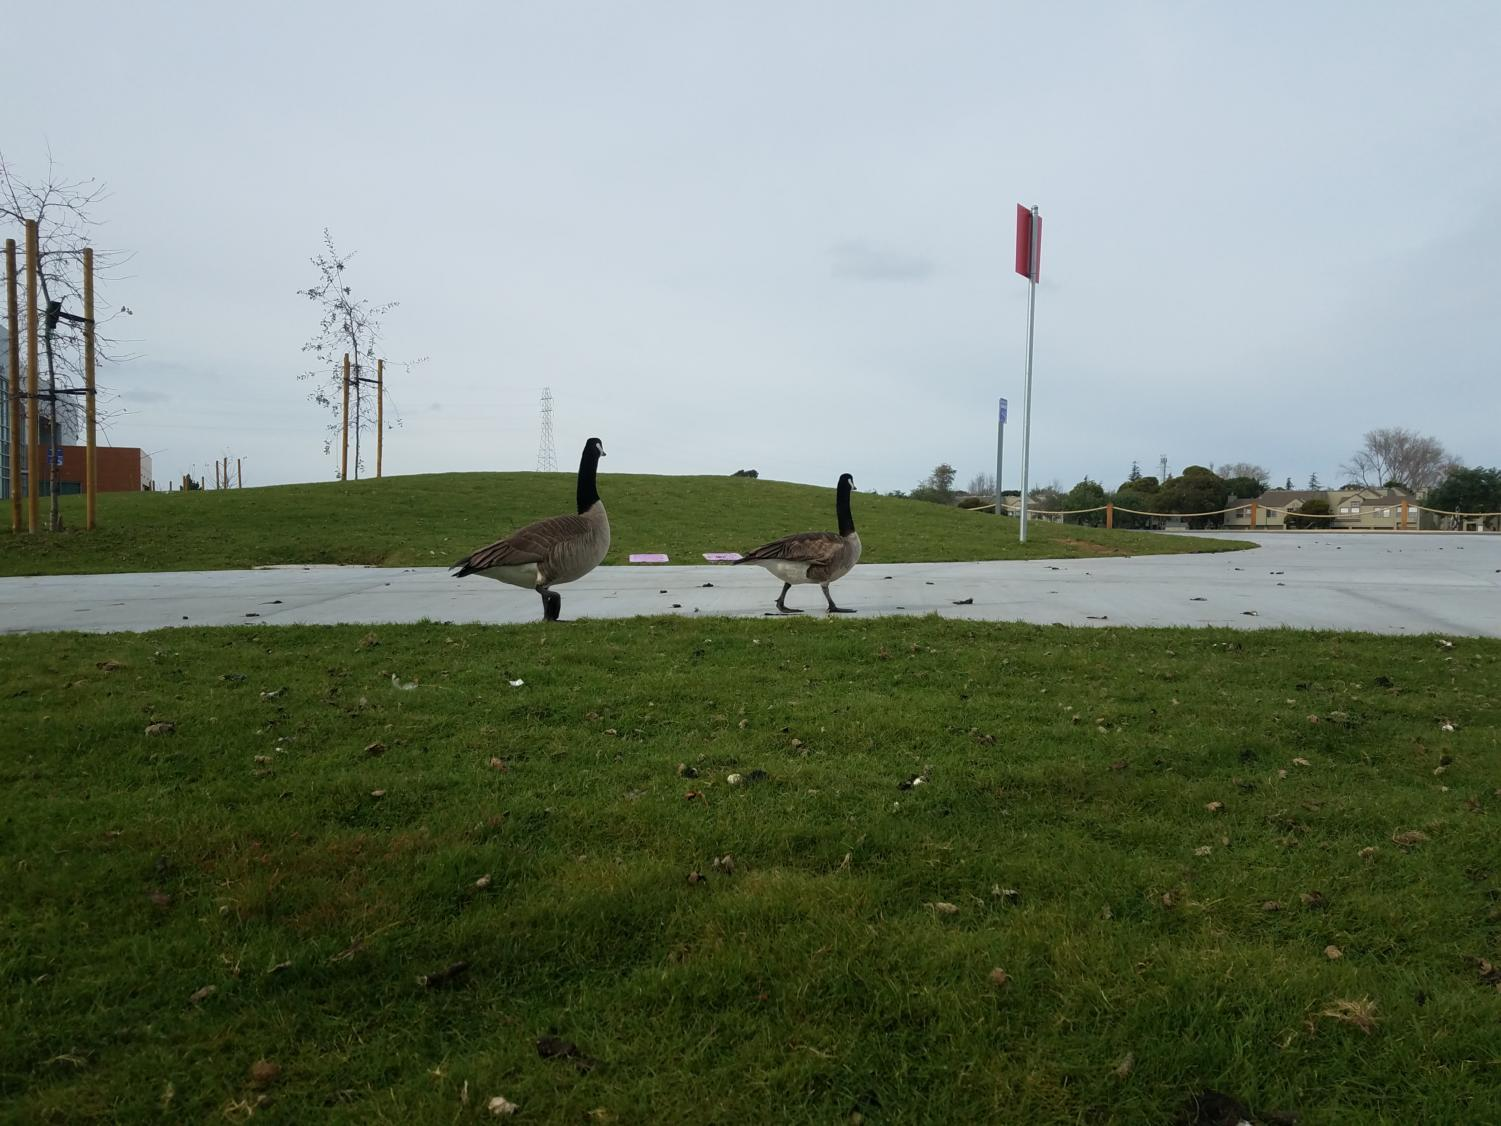 Canadian+geese+such+as+these+can+be+seen+flocking+around+the+campus+on+any+given+day.